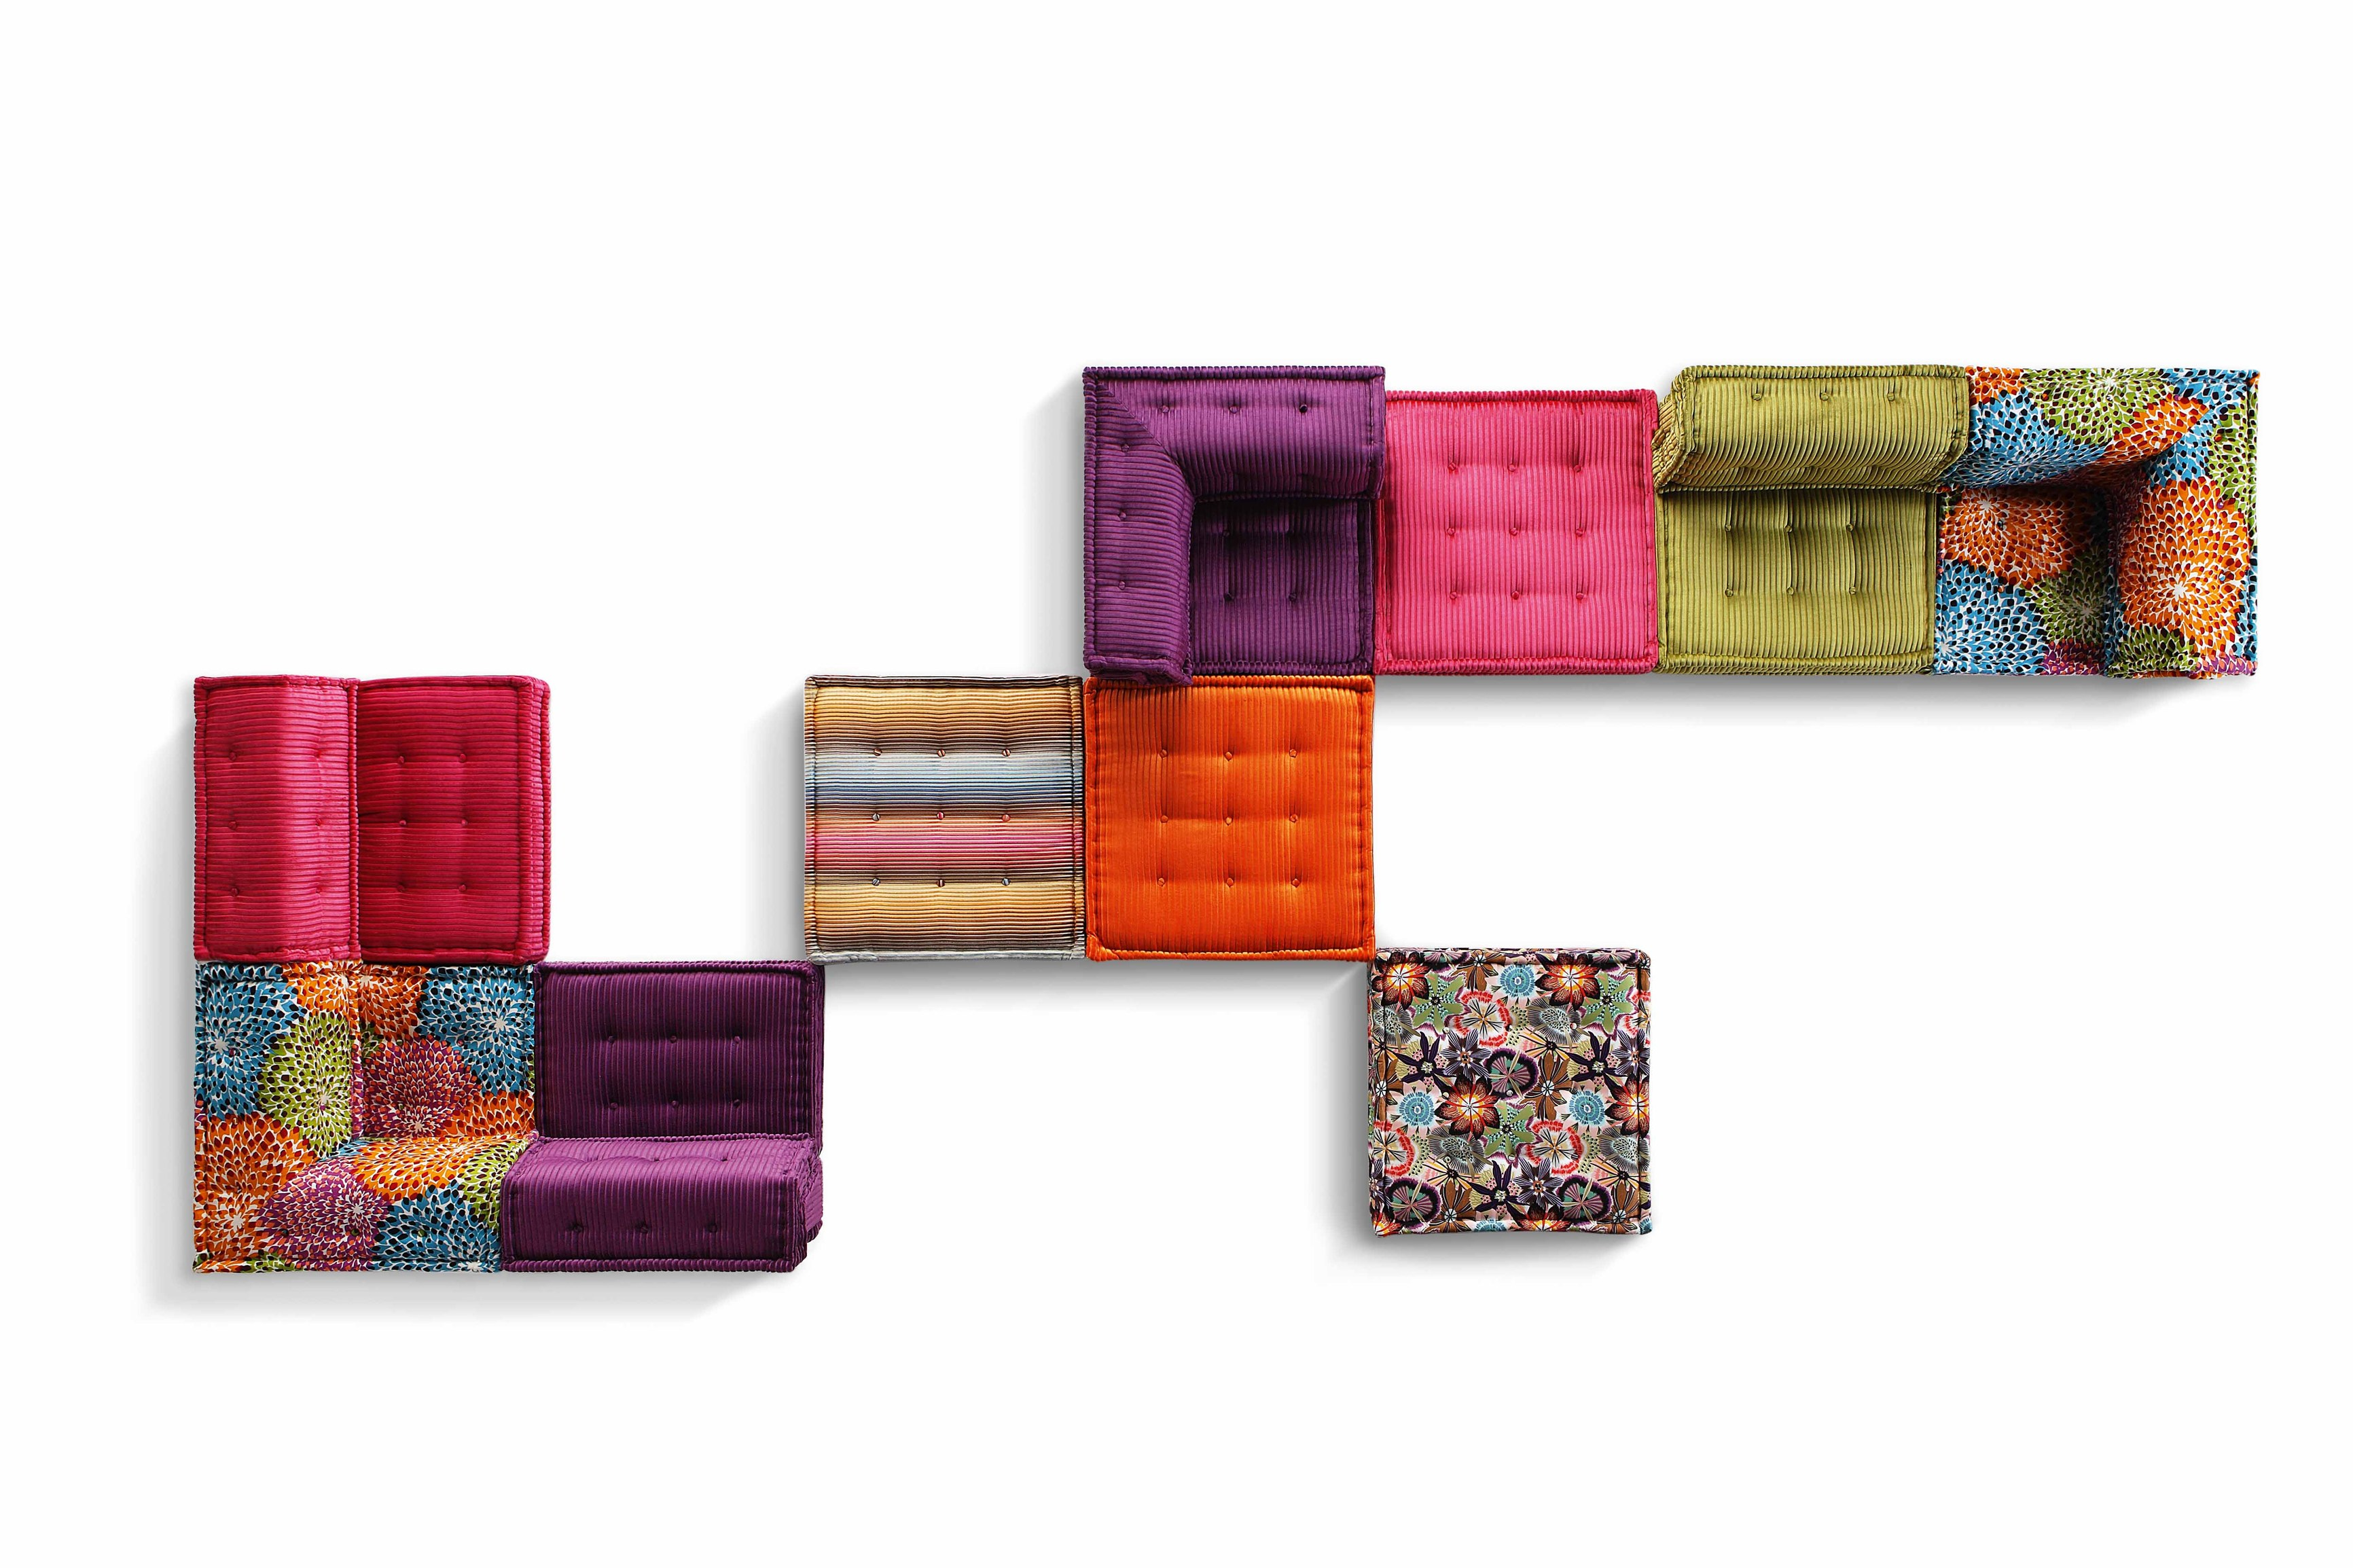 Luxury Ideas Of Roche Bobois Mah Jong - Best Home Plans and Interior ...